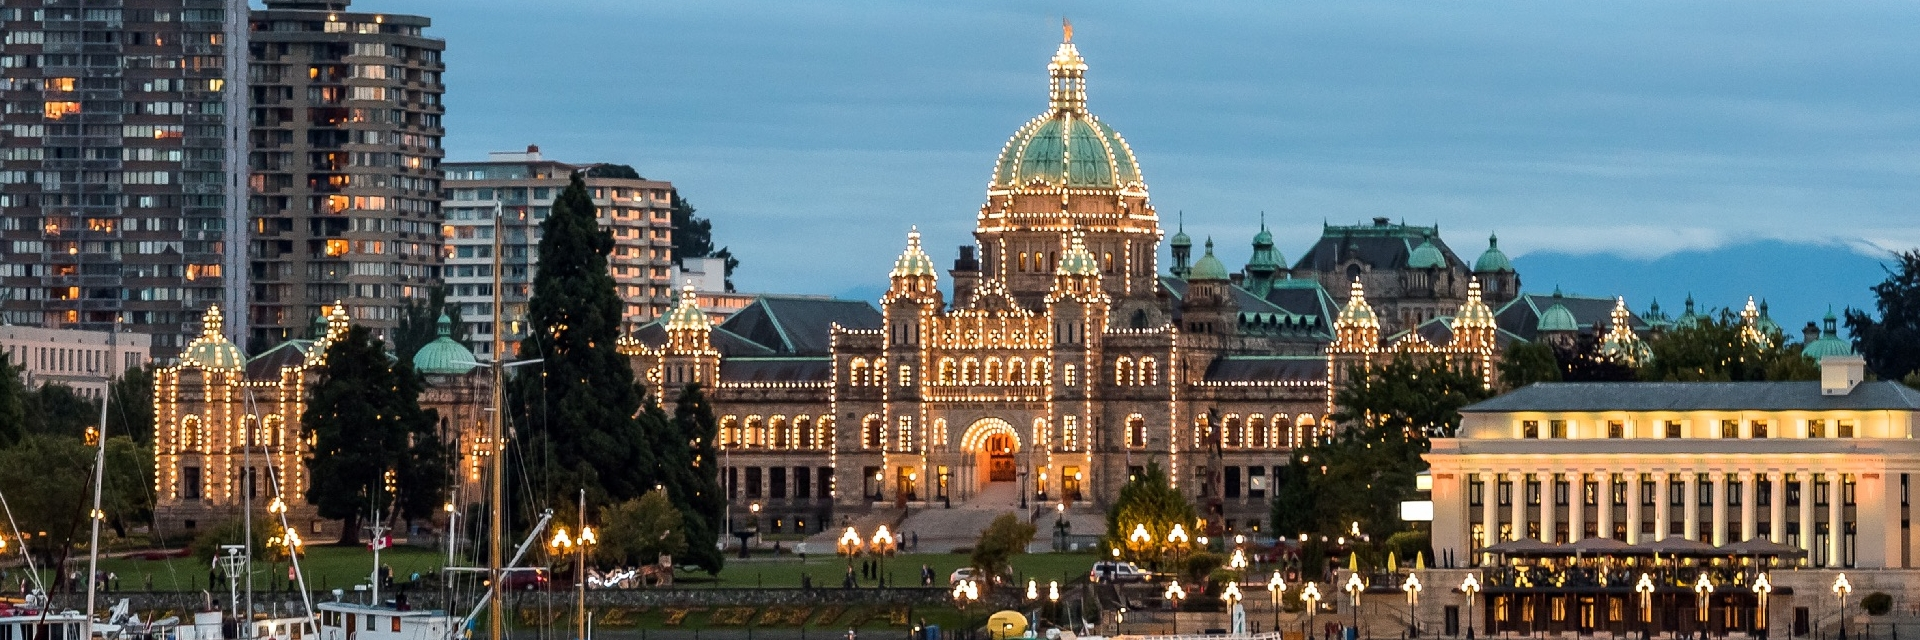 View of parliament building in Victoria.